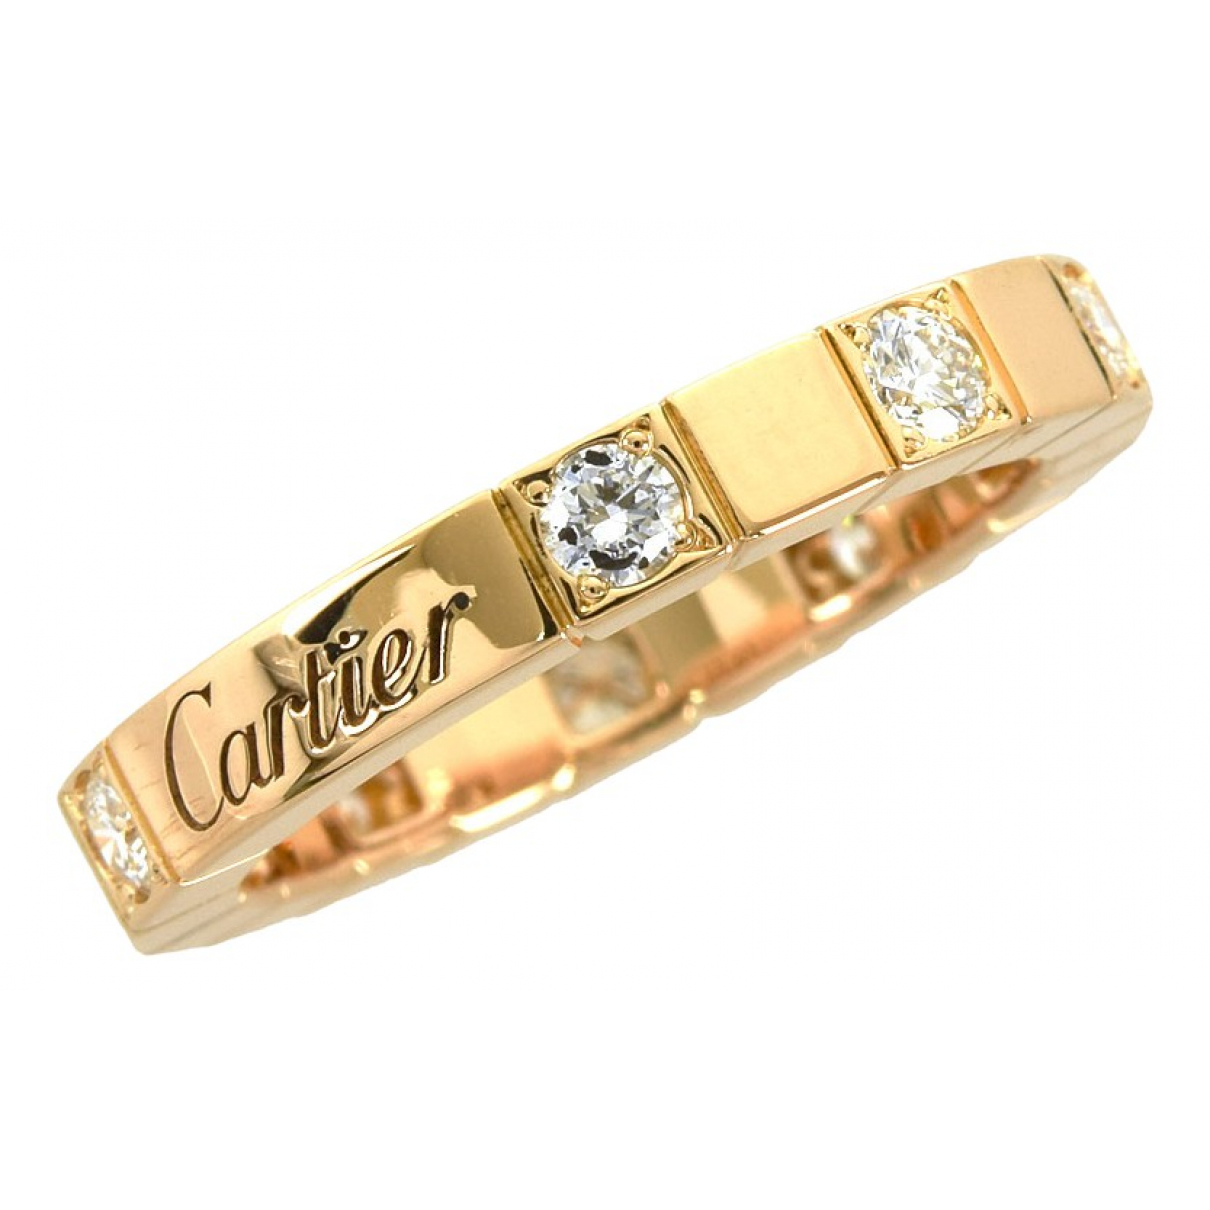 Cartier Lanieres Ring in  Gold Rosegold